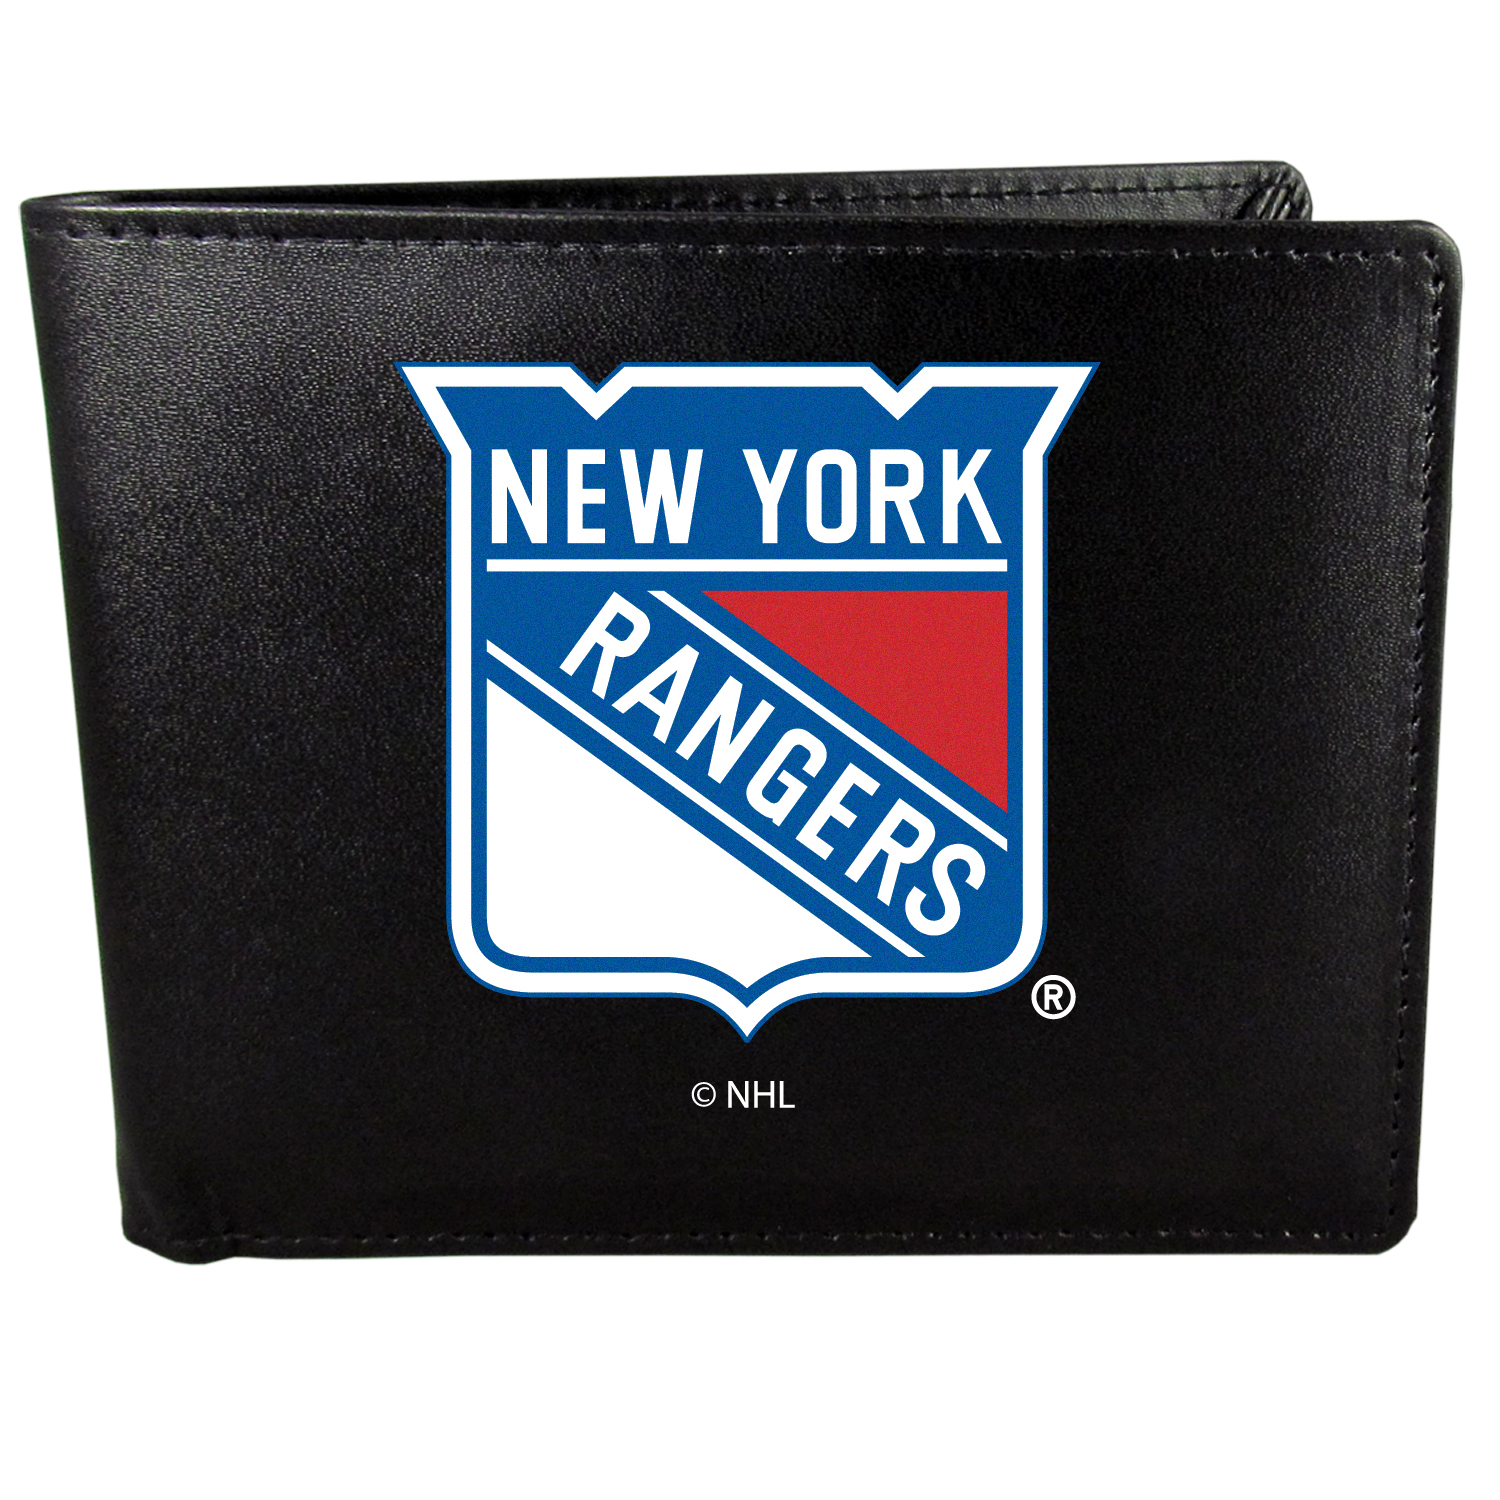 New York Rangers Bi-fold Wallet Large Logo - Sports fans do not have to sacrifice style with this classic bi-fold wallet that sports the New York Rangers?extra large logo. This men's fashion accessory has a leather grain look and expert craftmanship for a quality wallet at a great price. The wallet features inner credit card slots, windowed ID slot and a large billfold pocket. The front of the wallet features a printed team logo.